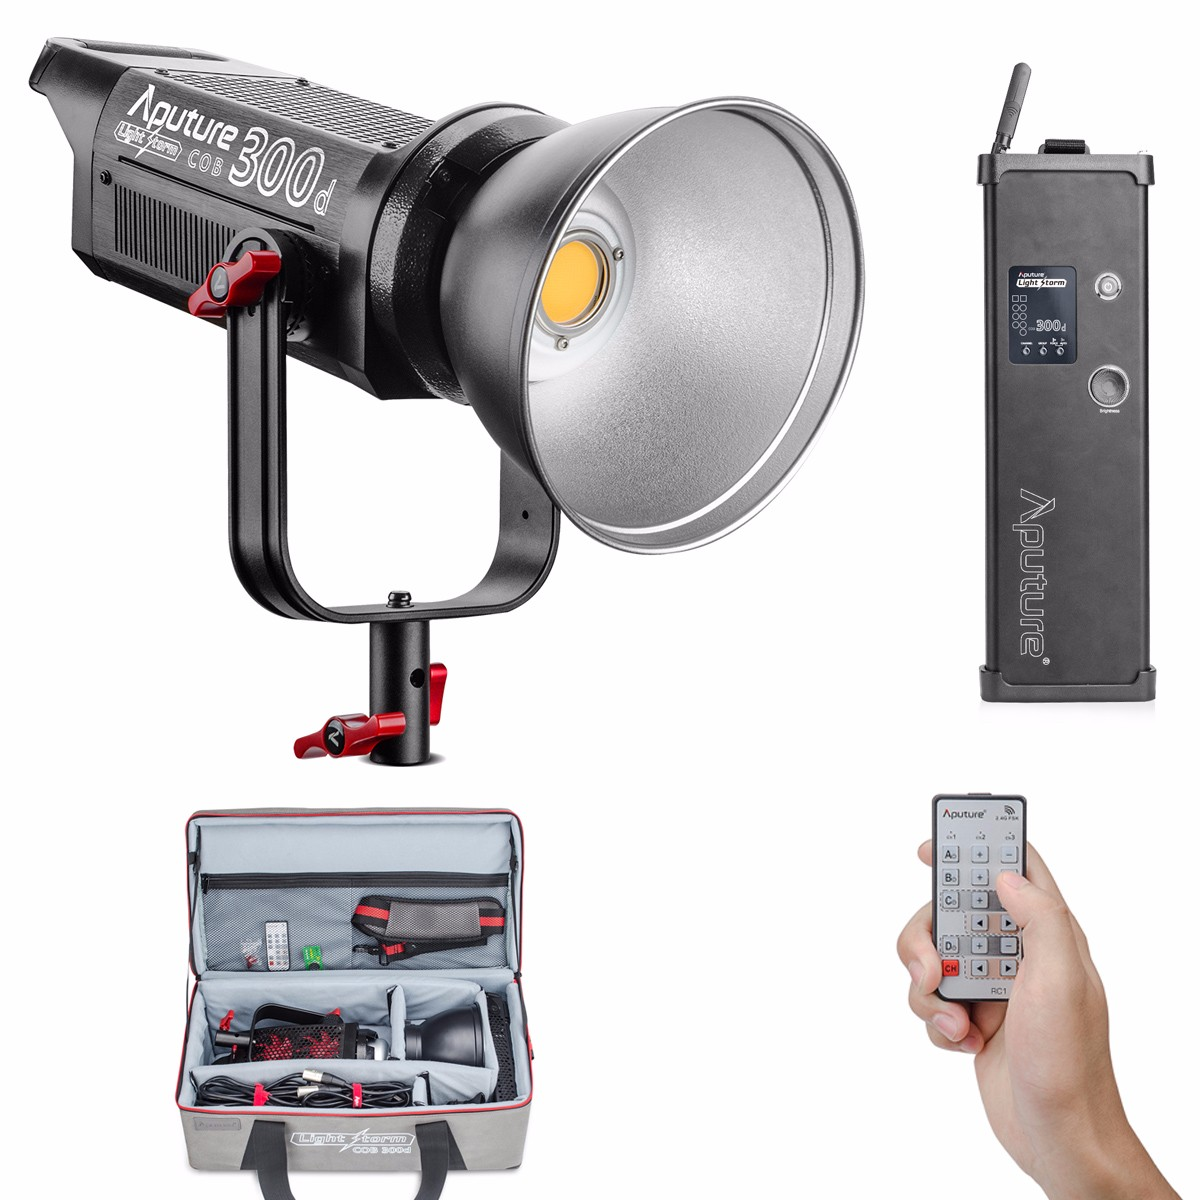 Aputure COB C300D 300D 300W 5500K Daylight Balanced LED Continuous Video Light CRI95+ TLCI96+ 2.4G Remote Control 18dB Low Noise aputure ls c300d cri 95 tlci 96 48000 lux 0 5m color temperature 5500k for filmmakers 2 4g remote aputure light dome mini